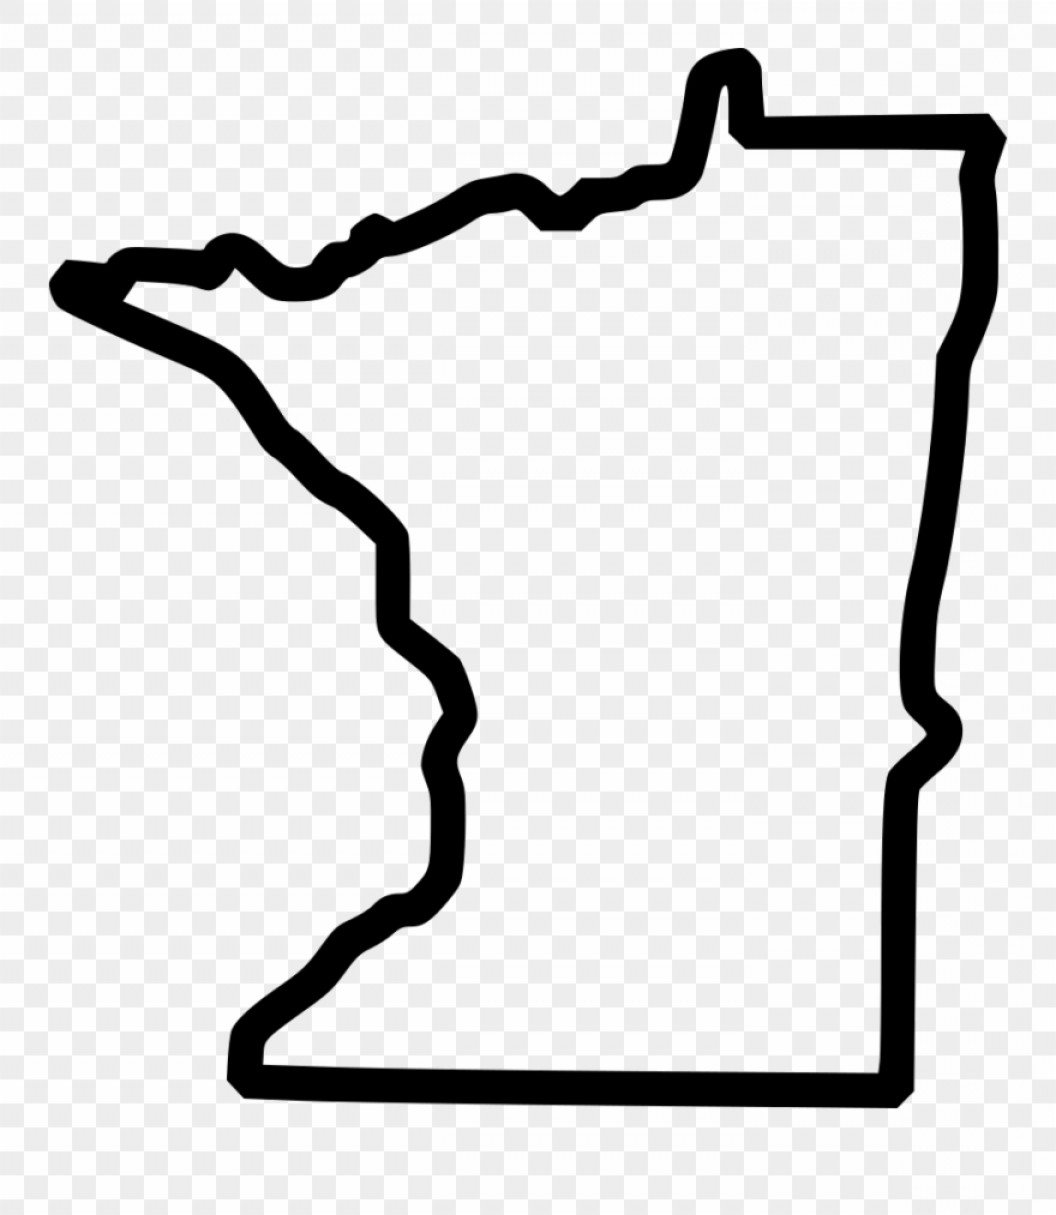 mn outline minnesota state clear clip art at clkercom vector clip outline mn